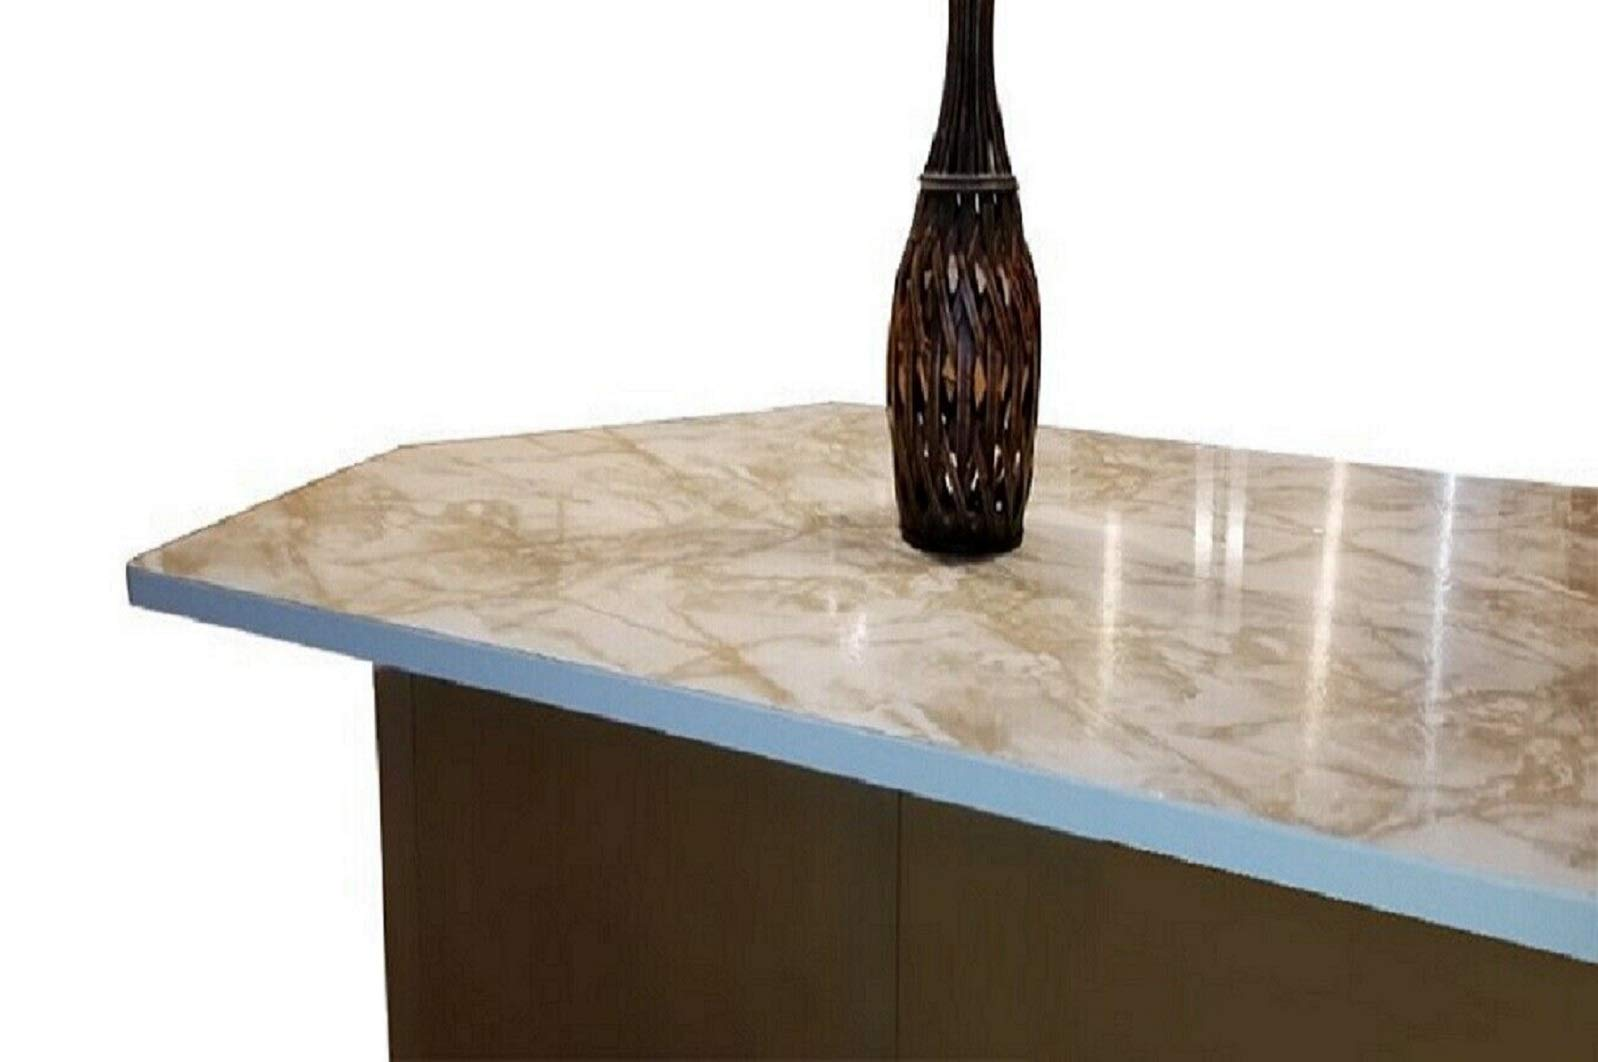 Marble Contact Paper Creme Brulee White Roll Upgrade Kitchen Countertop Backsplash Cabinet Furniture EZ FAUX DECOR Durable Thick Waterproof Heat Resistant Easy to Remove. (36'' X 240'') by EZ FAUX DECOR (Image #1)